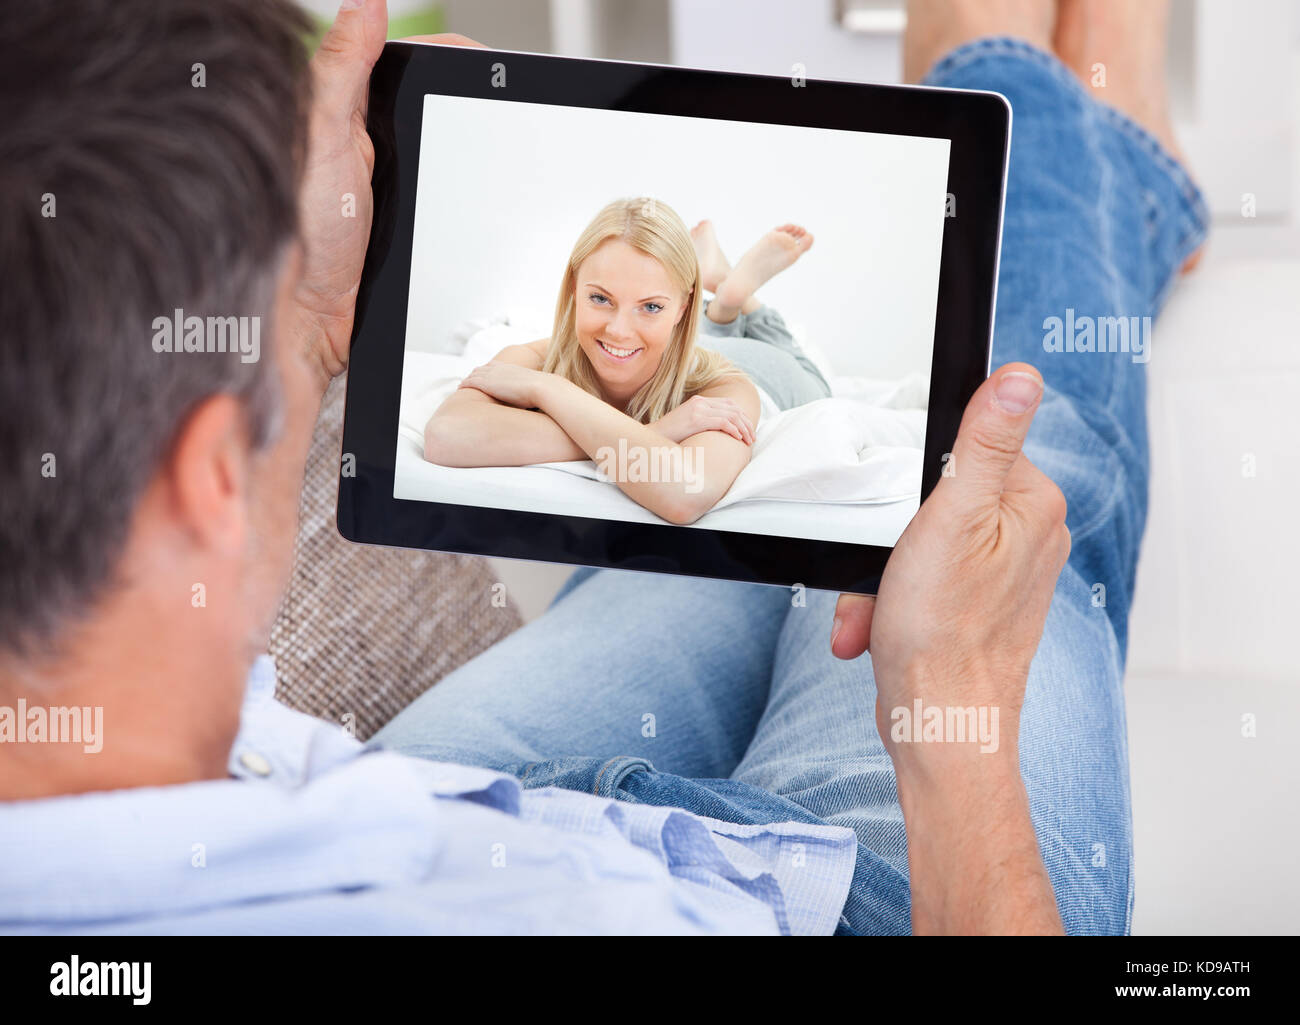 man chatting video